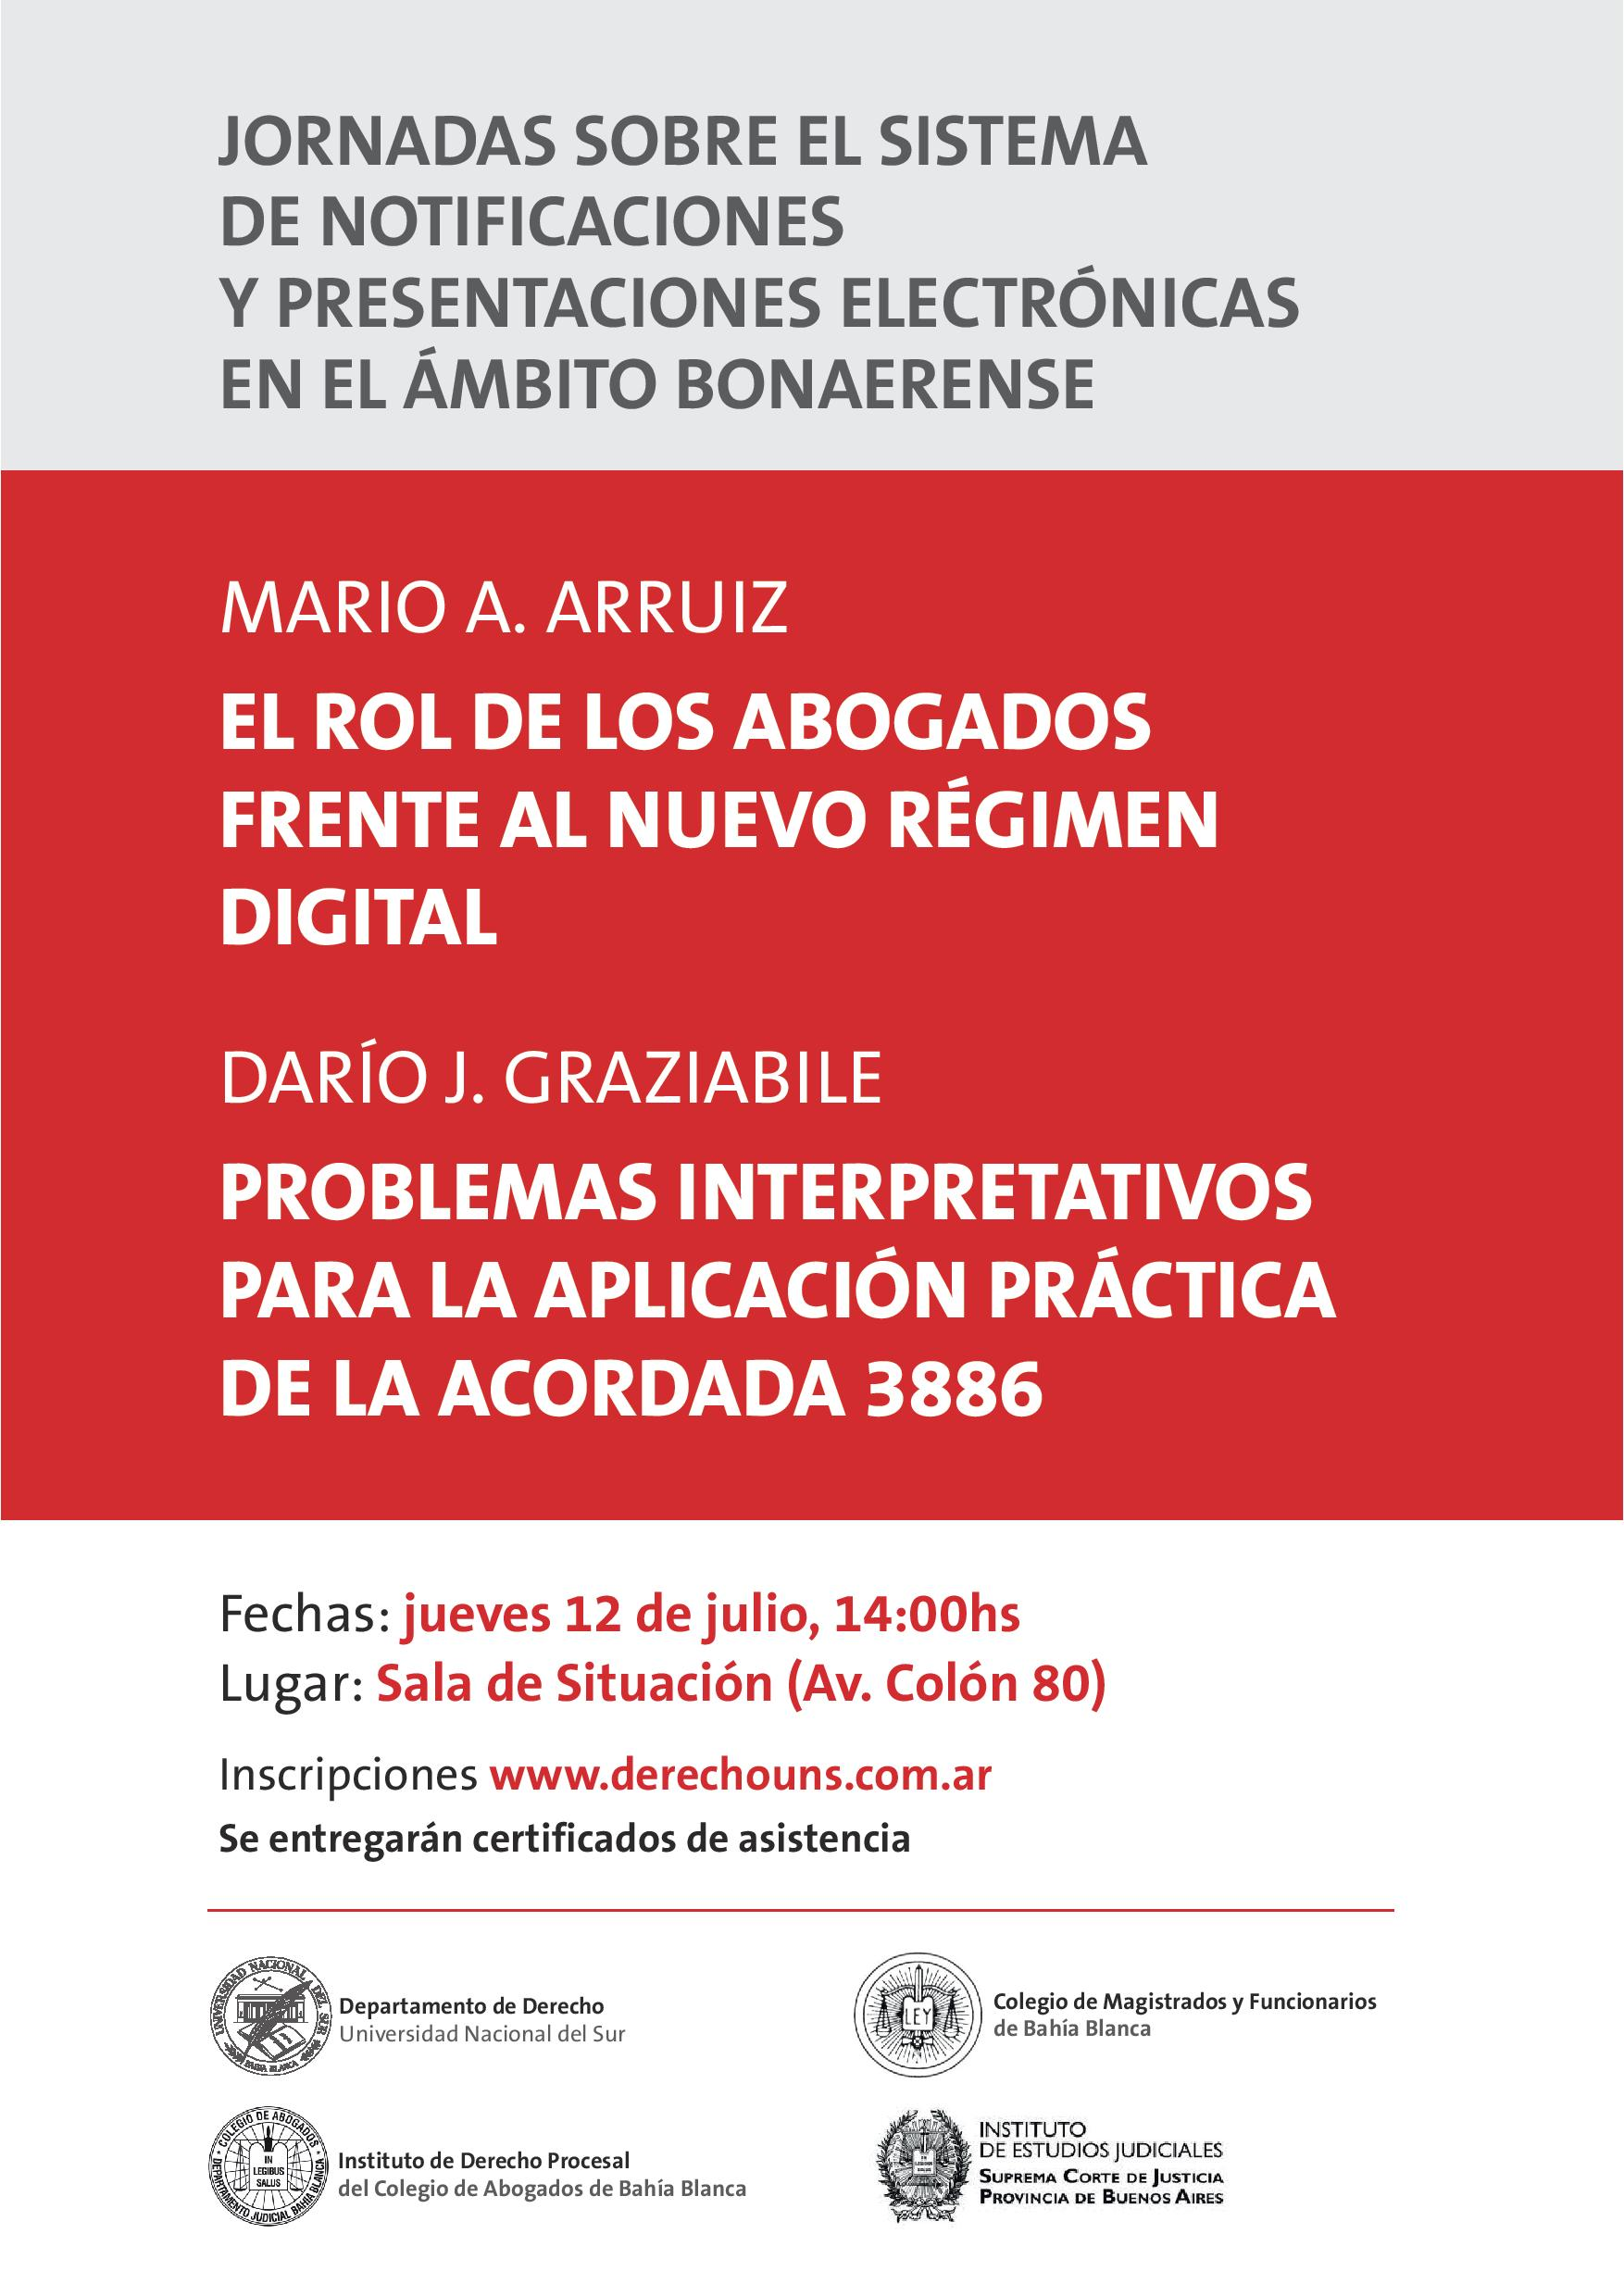 JORNADAS NOTIFICACIONES